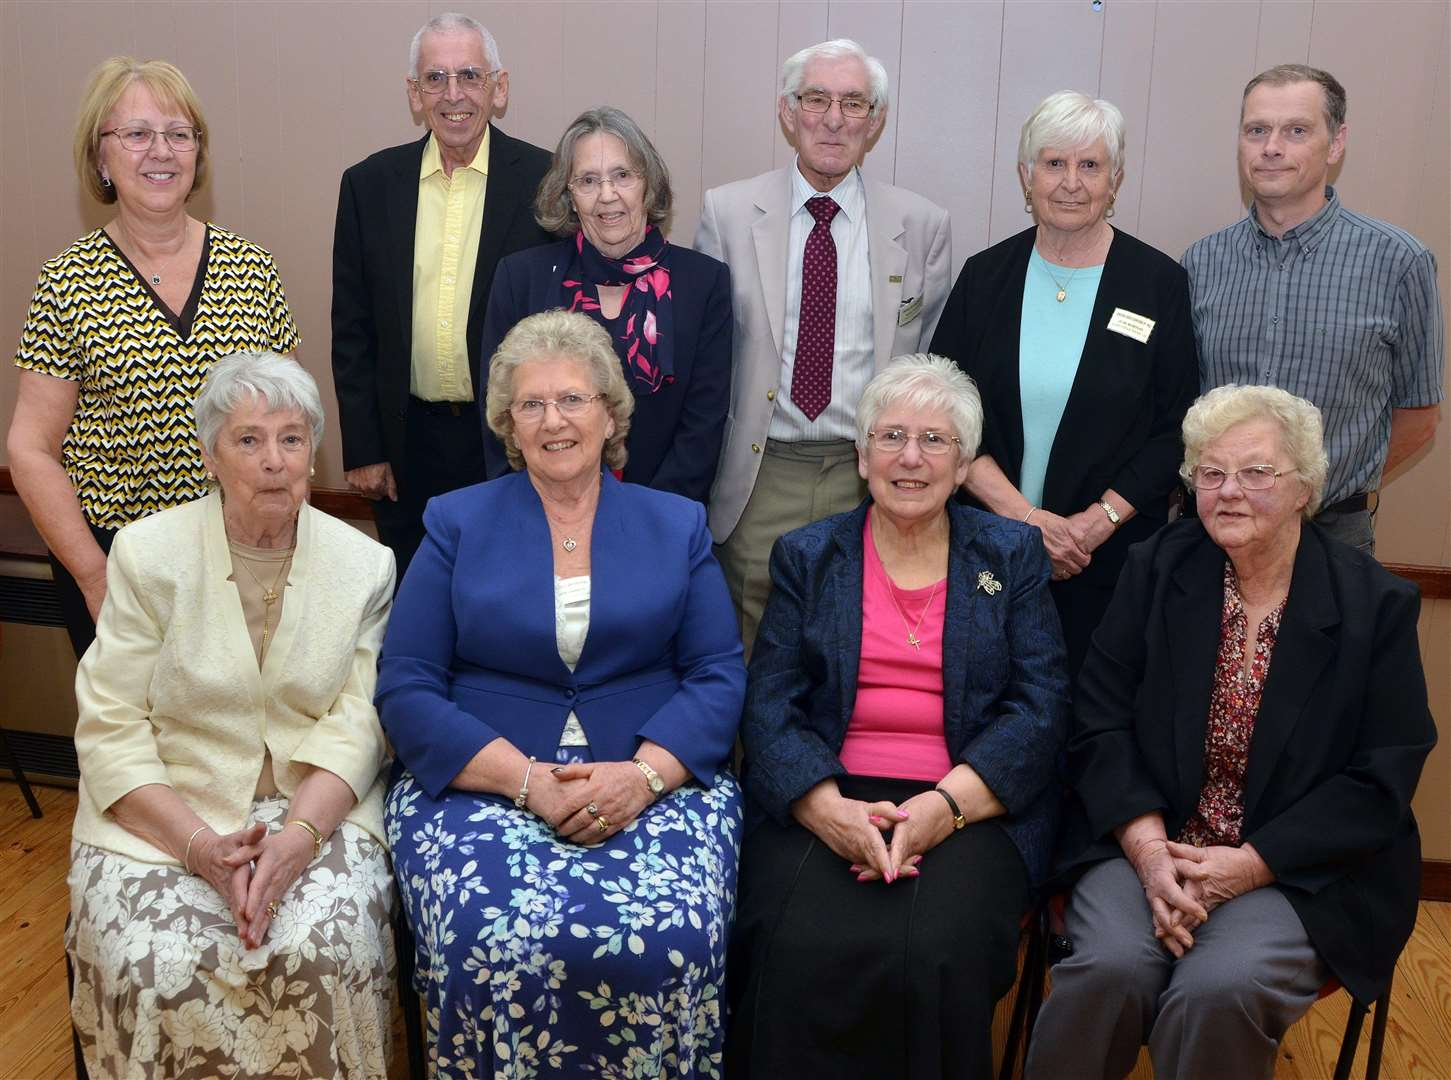 Crowland Cancer Fund committe members (back) Marian Keene, Paul Przyszlak, Barbara Balding, Mike Jackson, June Wortley, Paul Spicer, (front) chairman Val Capes, Eileen Garbutt, Libby Jackson and Pat Woodroffe. Photo by Tim Wilson. SG310317-201TW. (2285141)